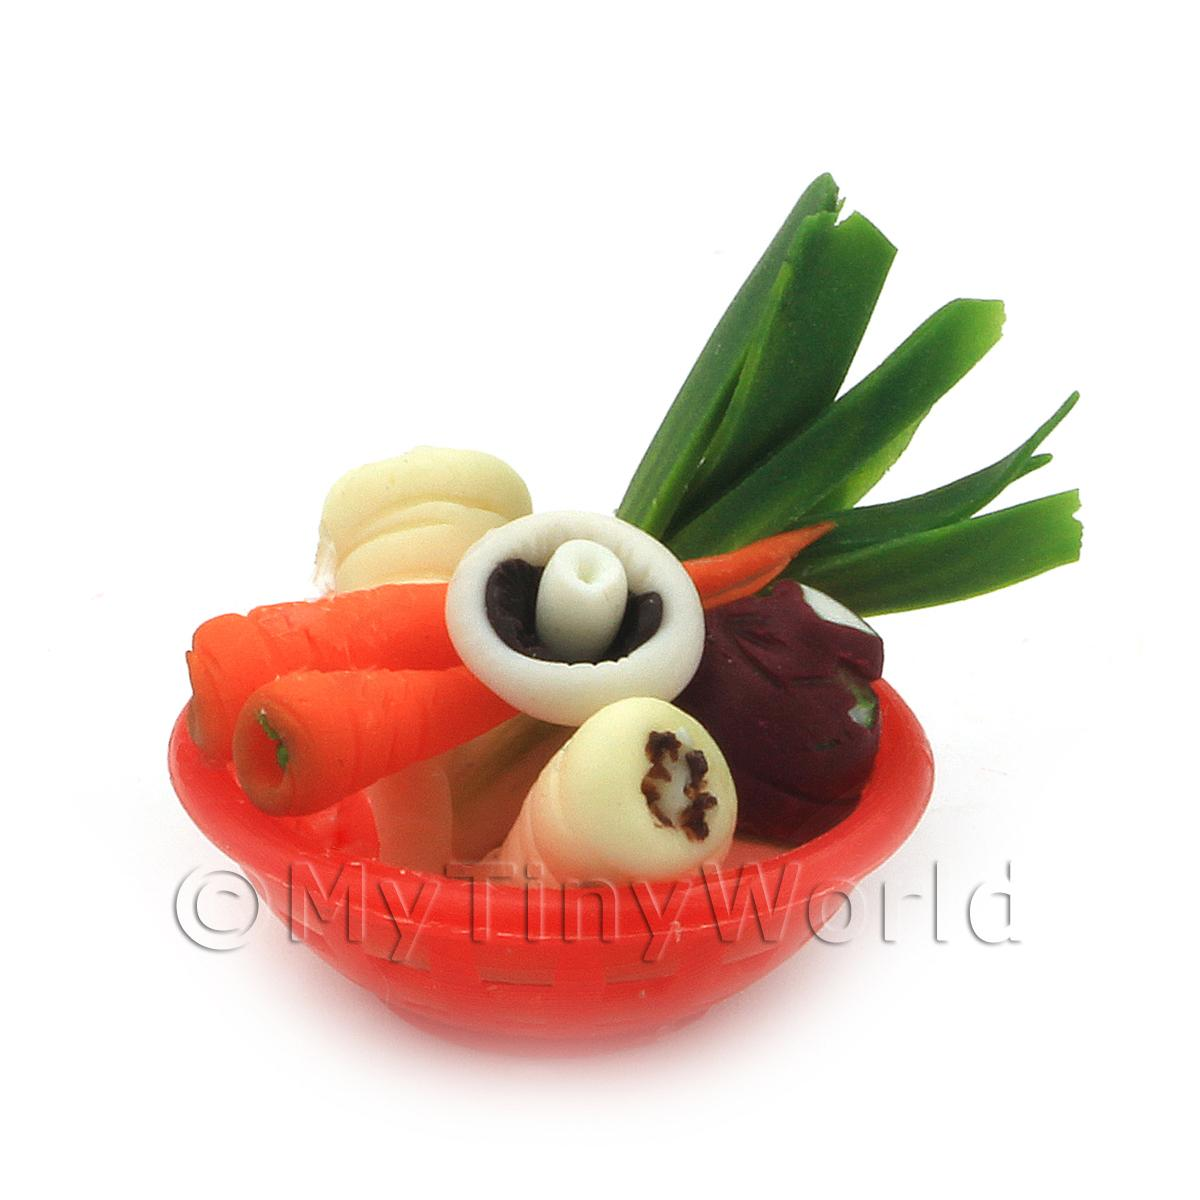 Dolls House Miniature Vegetable Assortment In Red Bowl